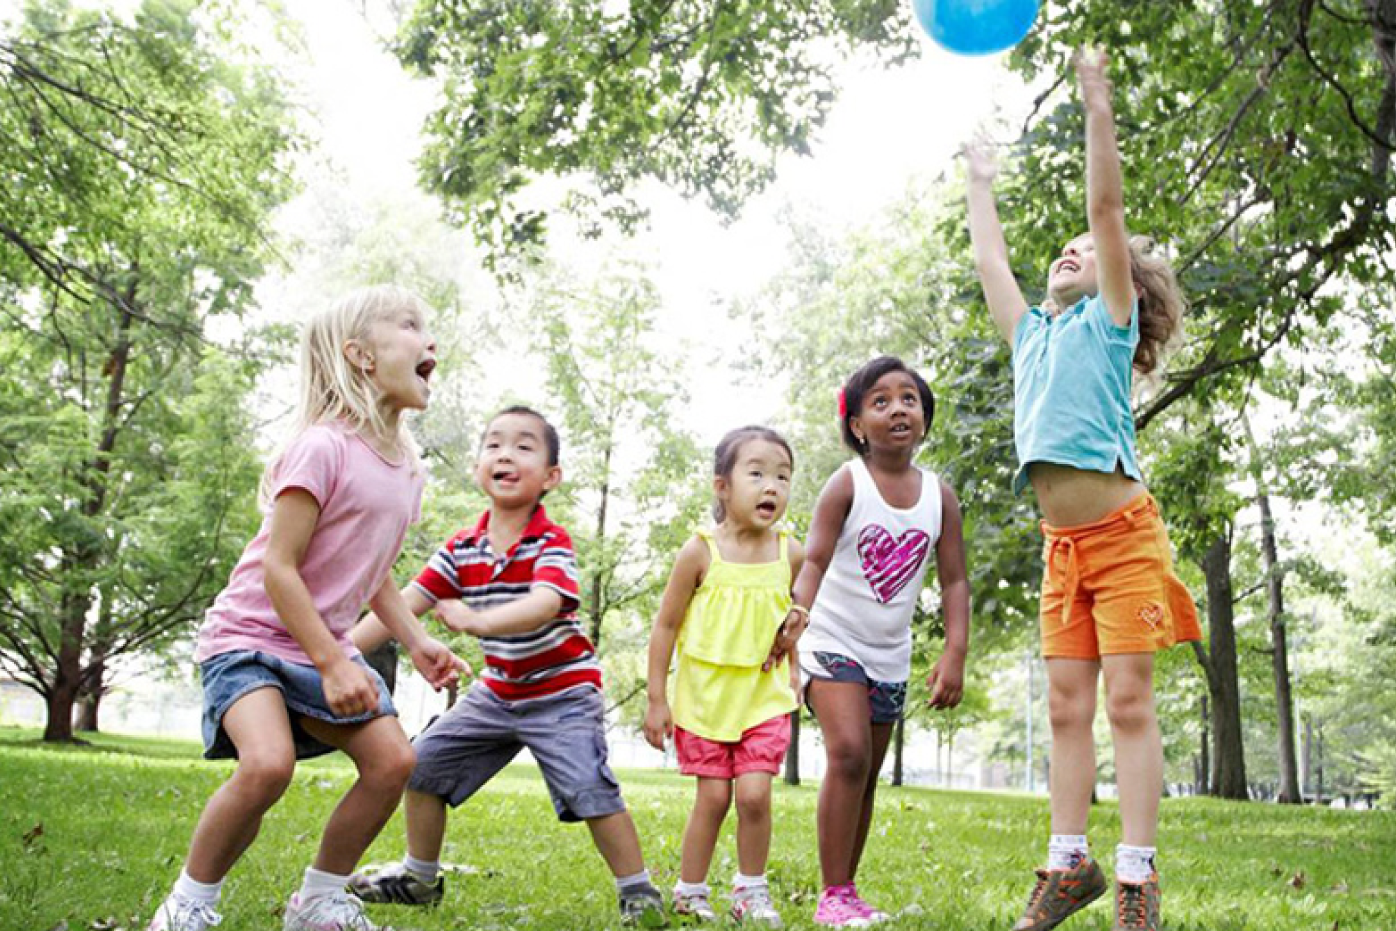 benefits of kids playing outdoors Martha erickson, phd, always believed that her frequent nature outings with her children, and her encouragement of their independent play and exploration outdoors, helped them mature into well-rounded adults.